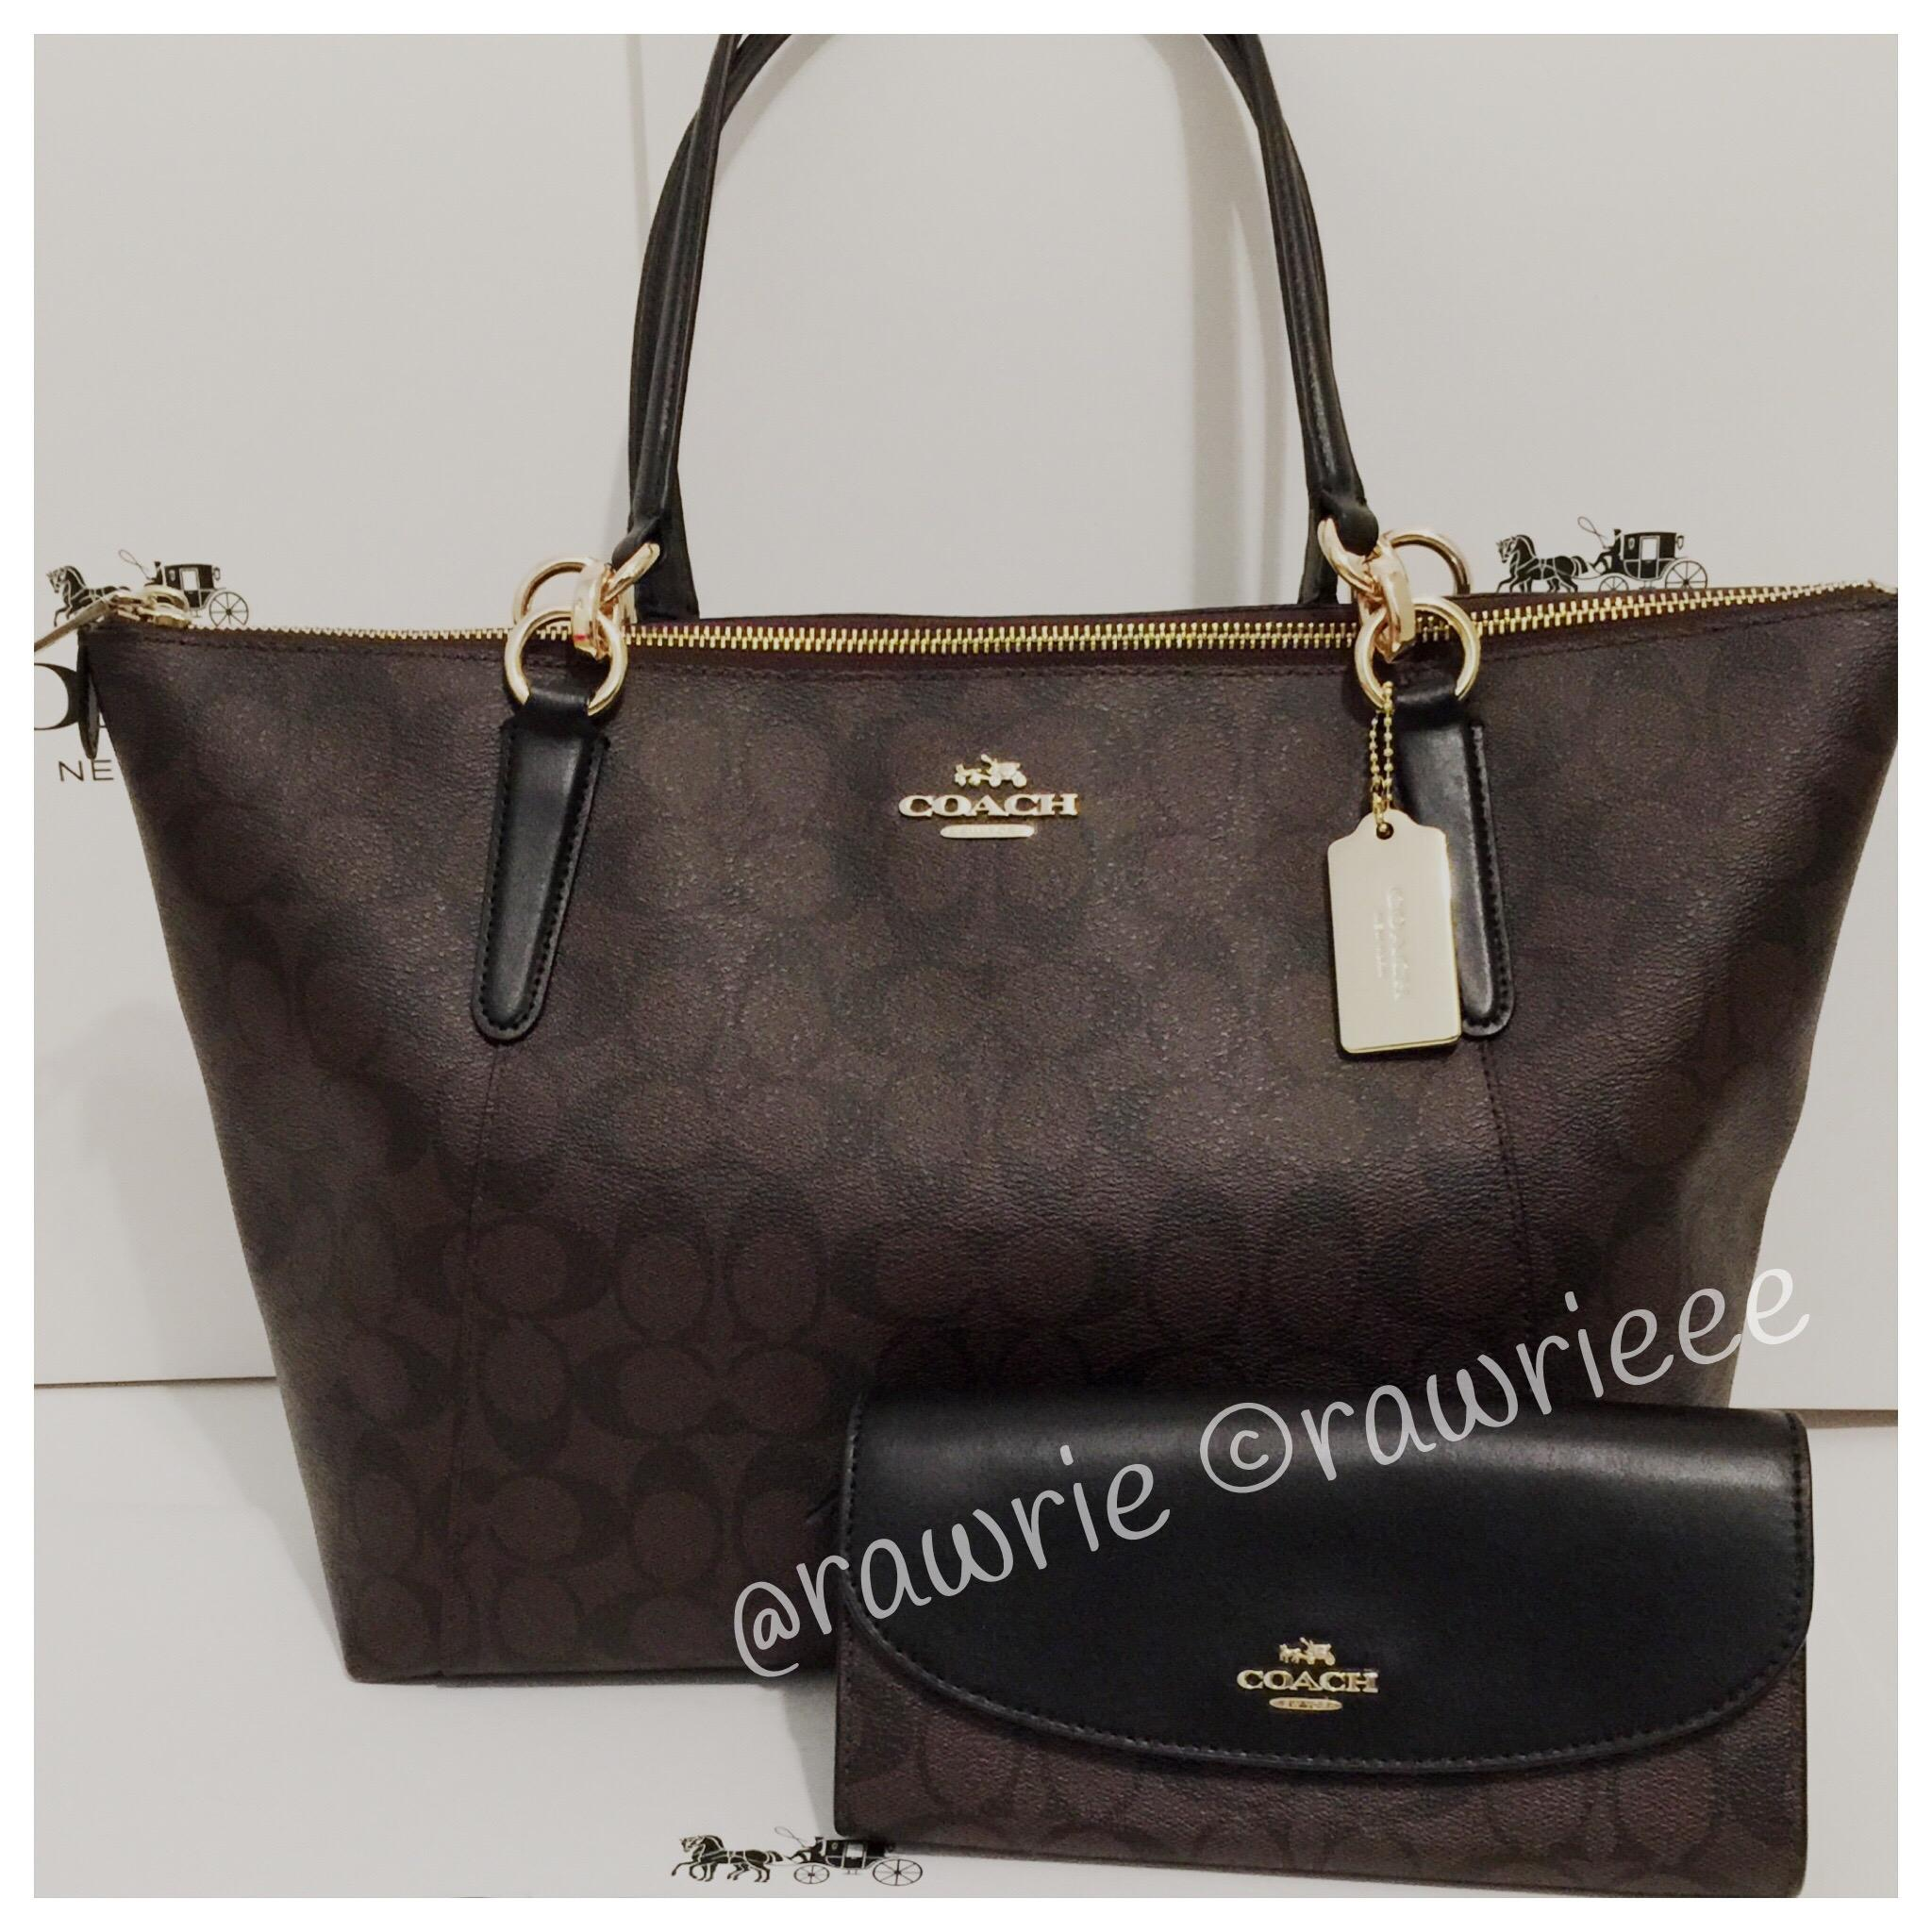 9648c09901f5 discount code for coach monogram gift set set matching set brown tote in  black 42637 2dadf